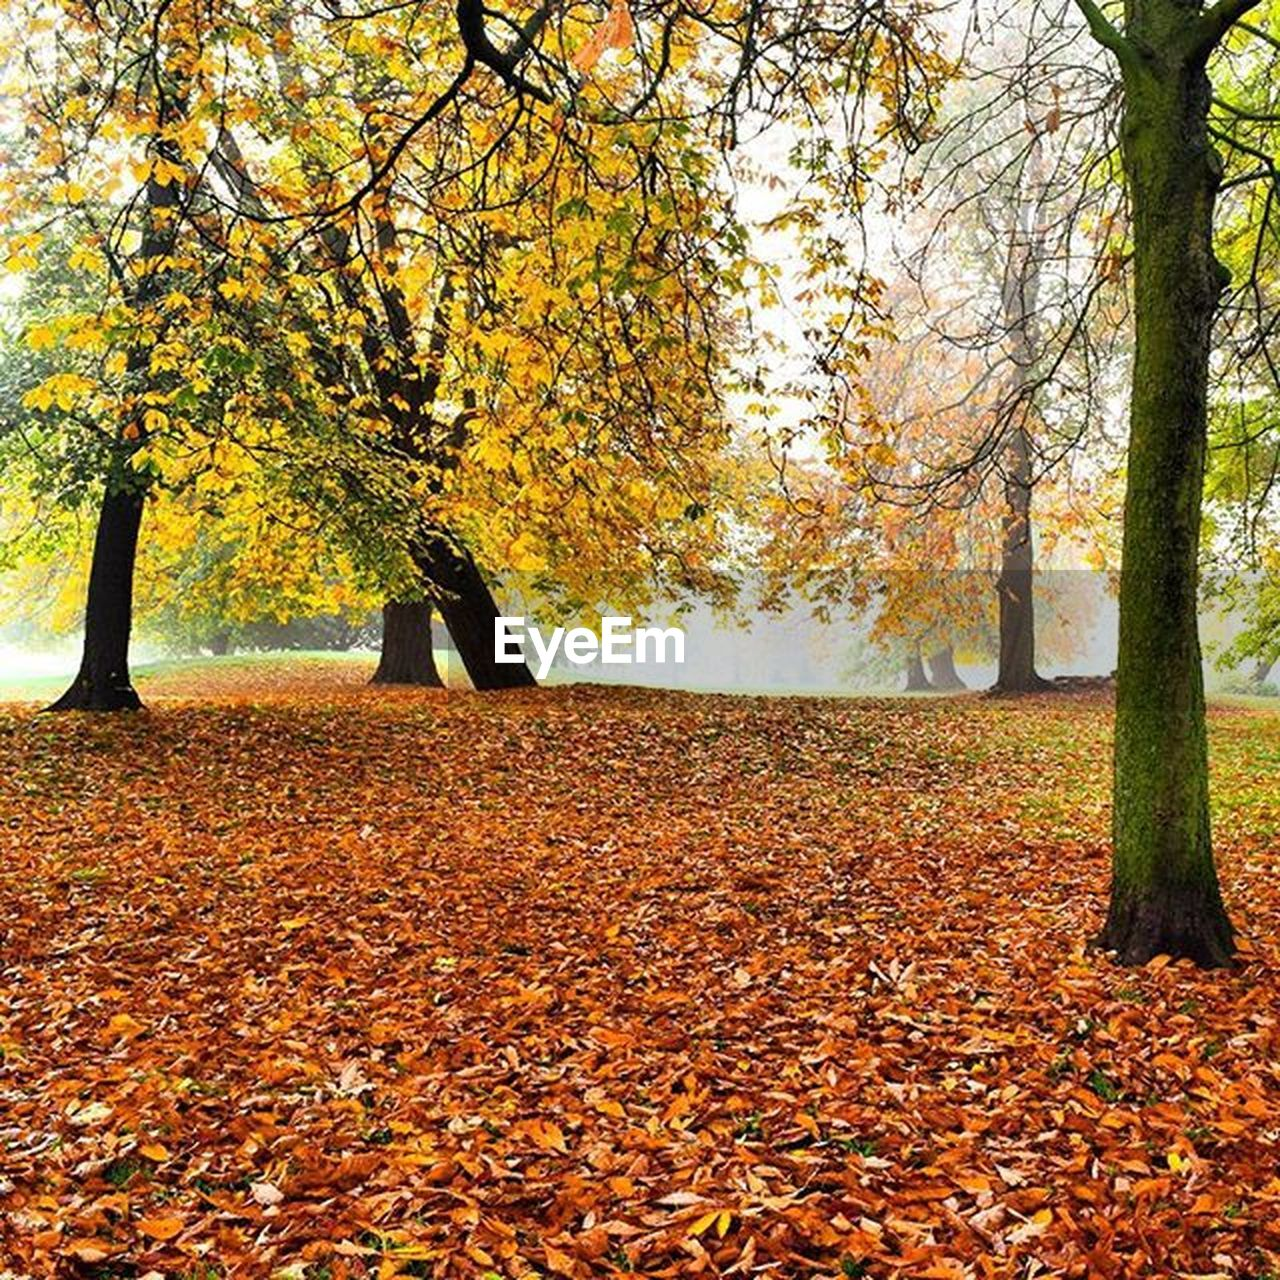 change, autumn, leaf, tree, nature, beauty in nature, leaves, scenics, fall, tranquility, orange color, dry, fallen, maple tree, maple, maple leaf, tranquil scene, environment, idyllic, forest, weather, outdoors, yellow, landscape, no people, growth, ice hockey, field, day, tree trunk, hockey, branch, deciduous tree